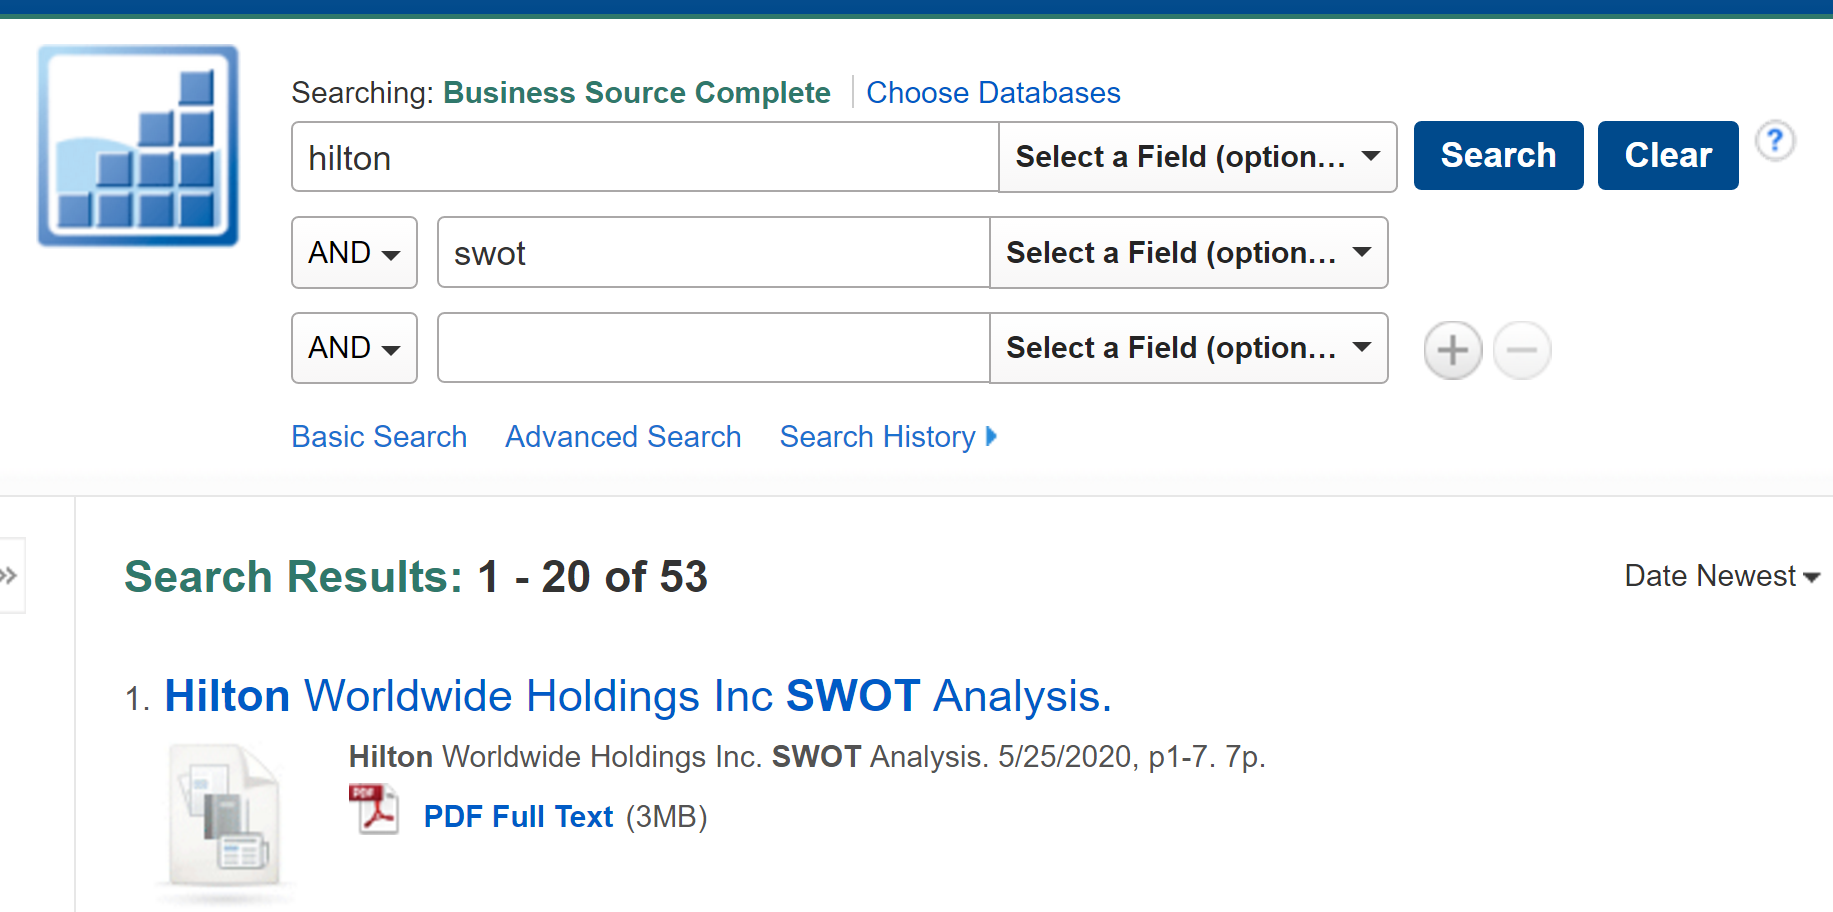 """screenshot of Business Source Complete search for """"hilton"""" AND """"swot"""""""